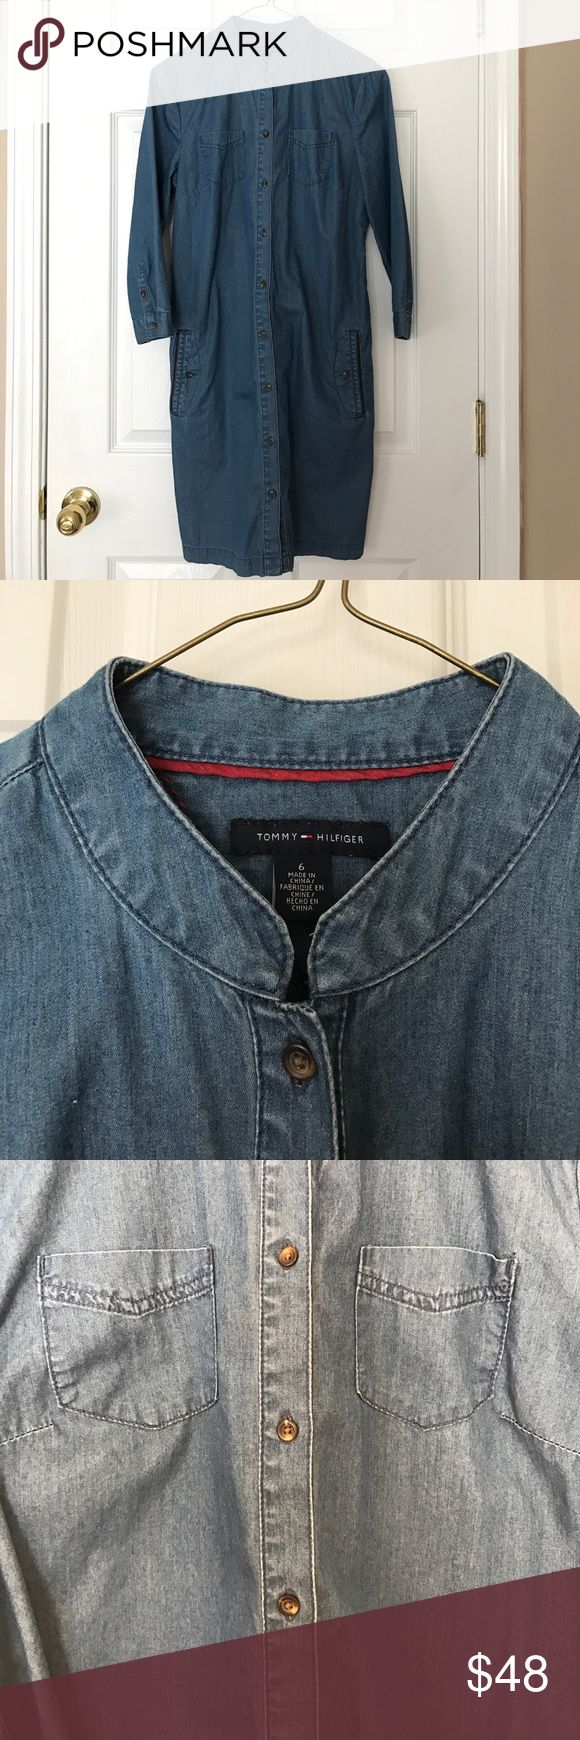 Tommy Hilfiger denim Tshirt dress In excellent used condition, only worn once. Tommy Hilfiger Dresses Mini